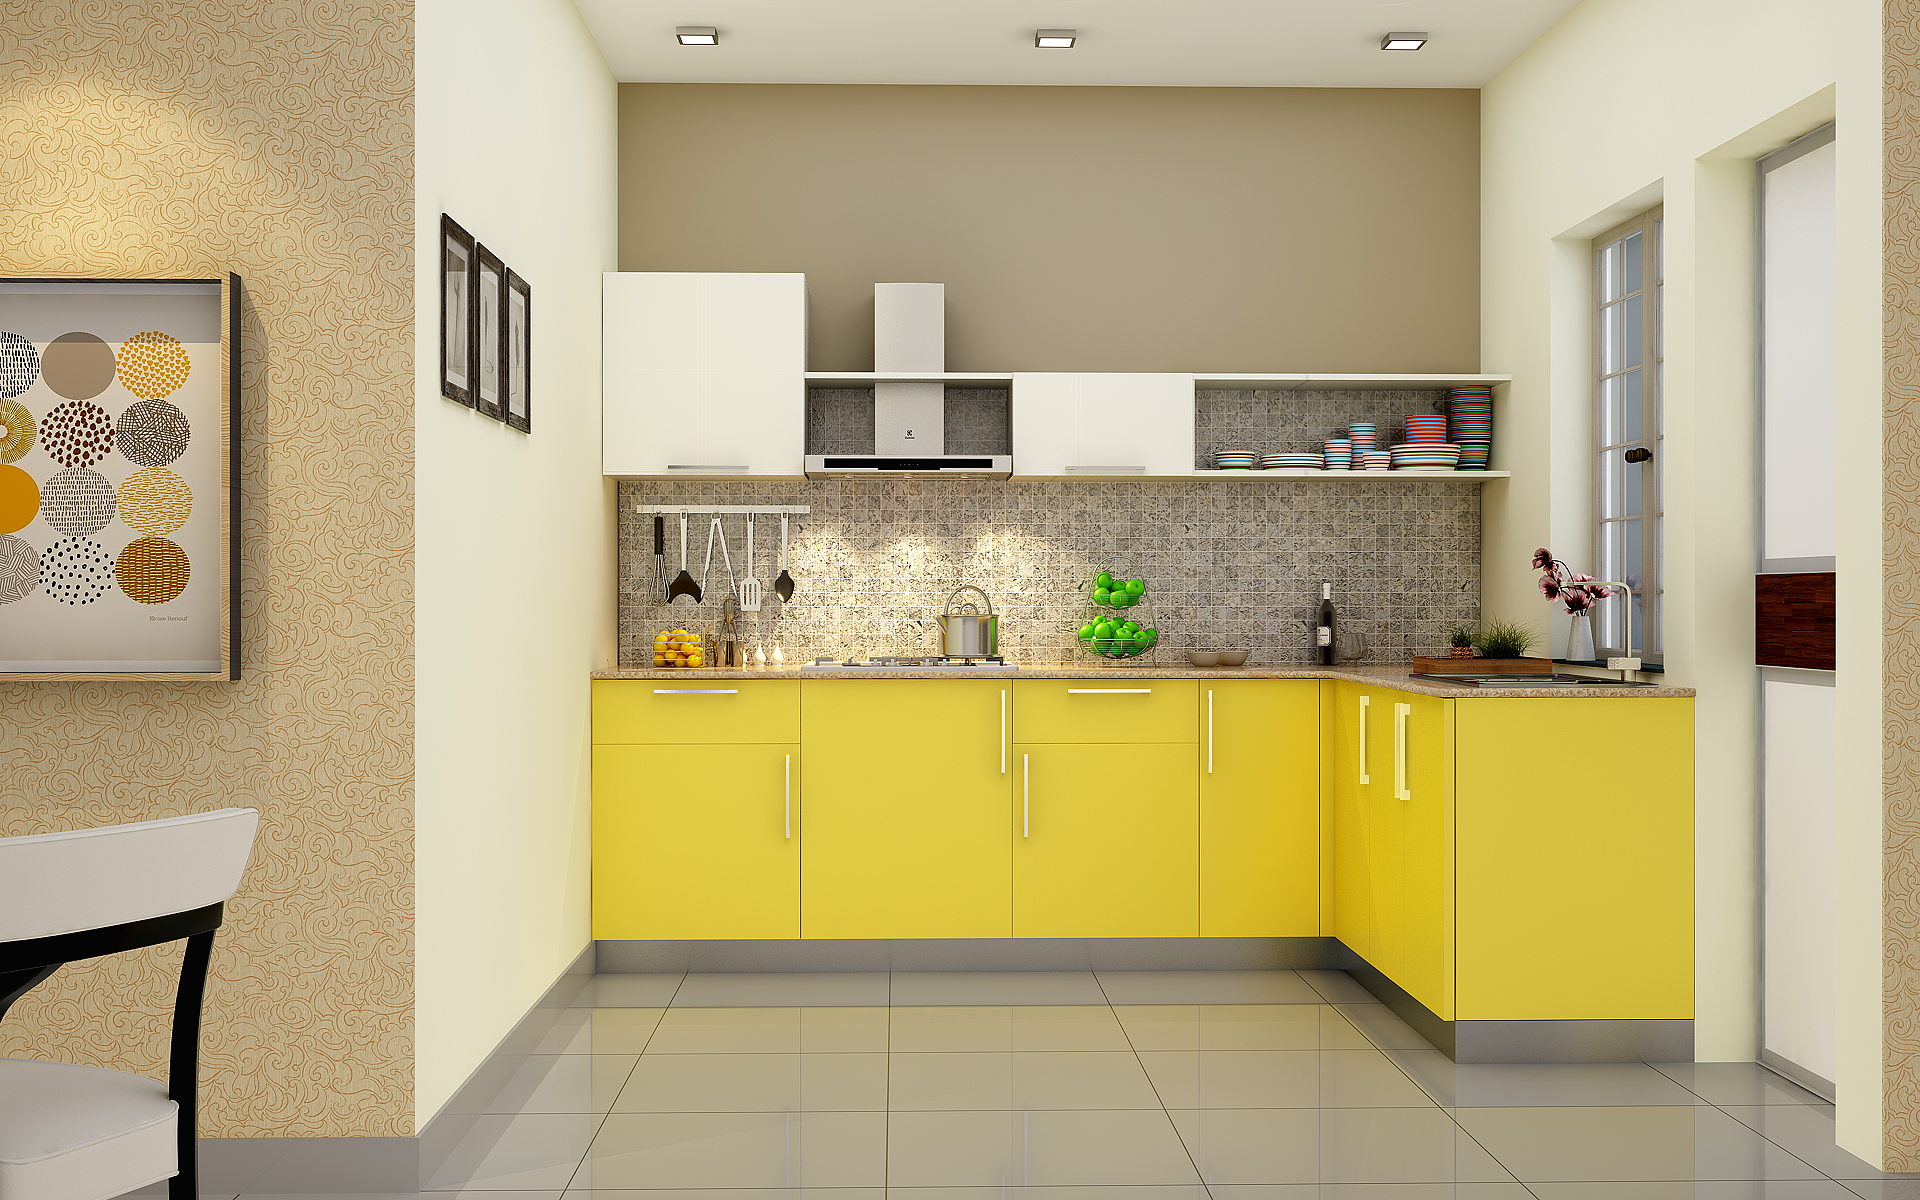 Heron Elegant L Shaped KitchenBuy Modular  Latest  Budget Kitchens online India   HomeLane com. U Shaped Modular Kitchen Design. Home Design Ideas